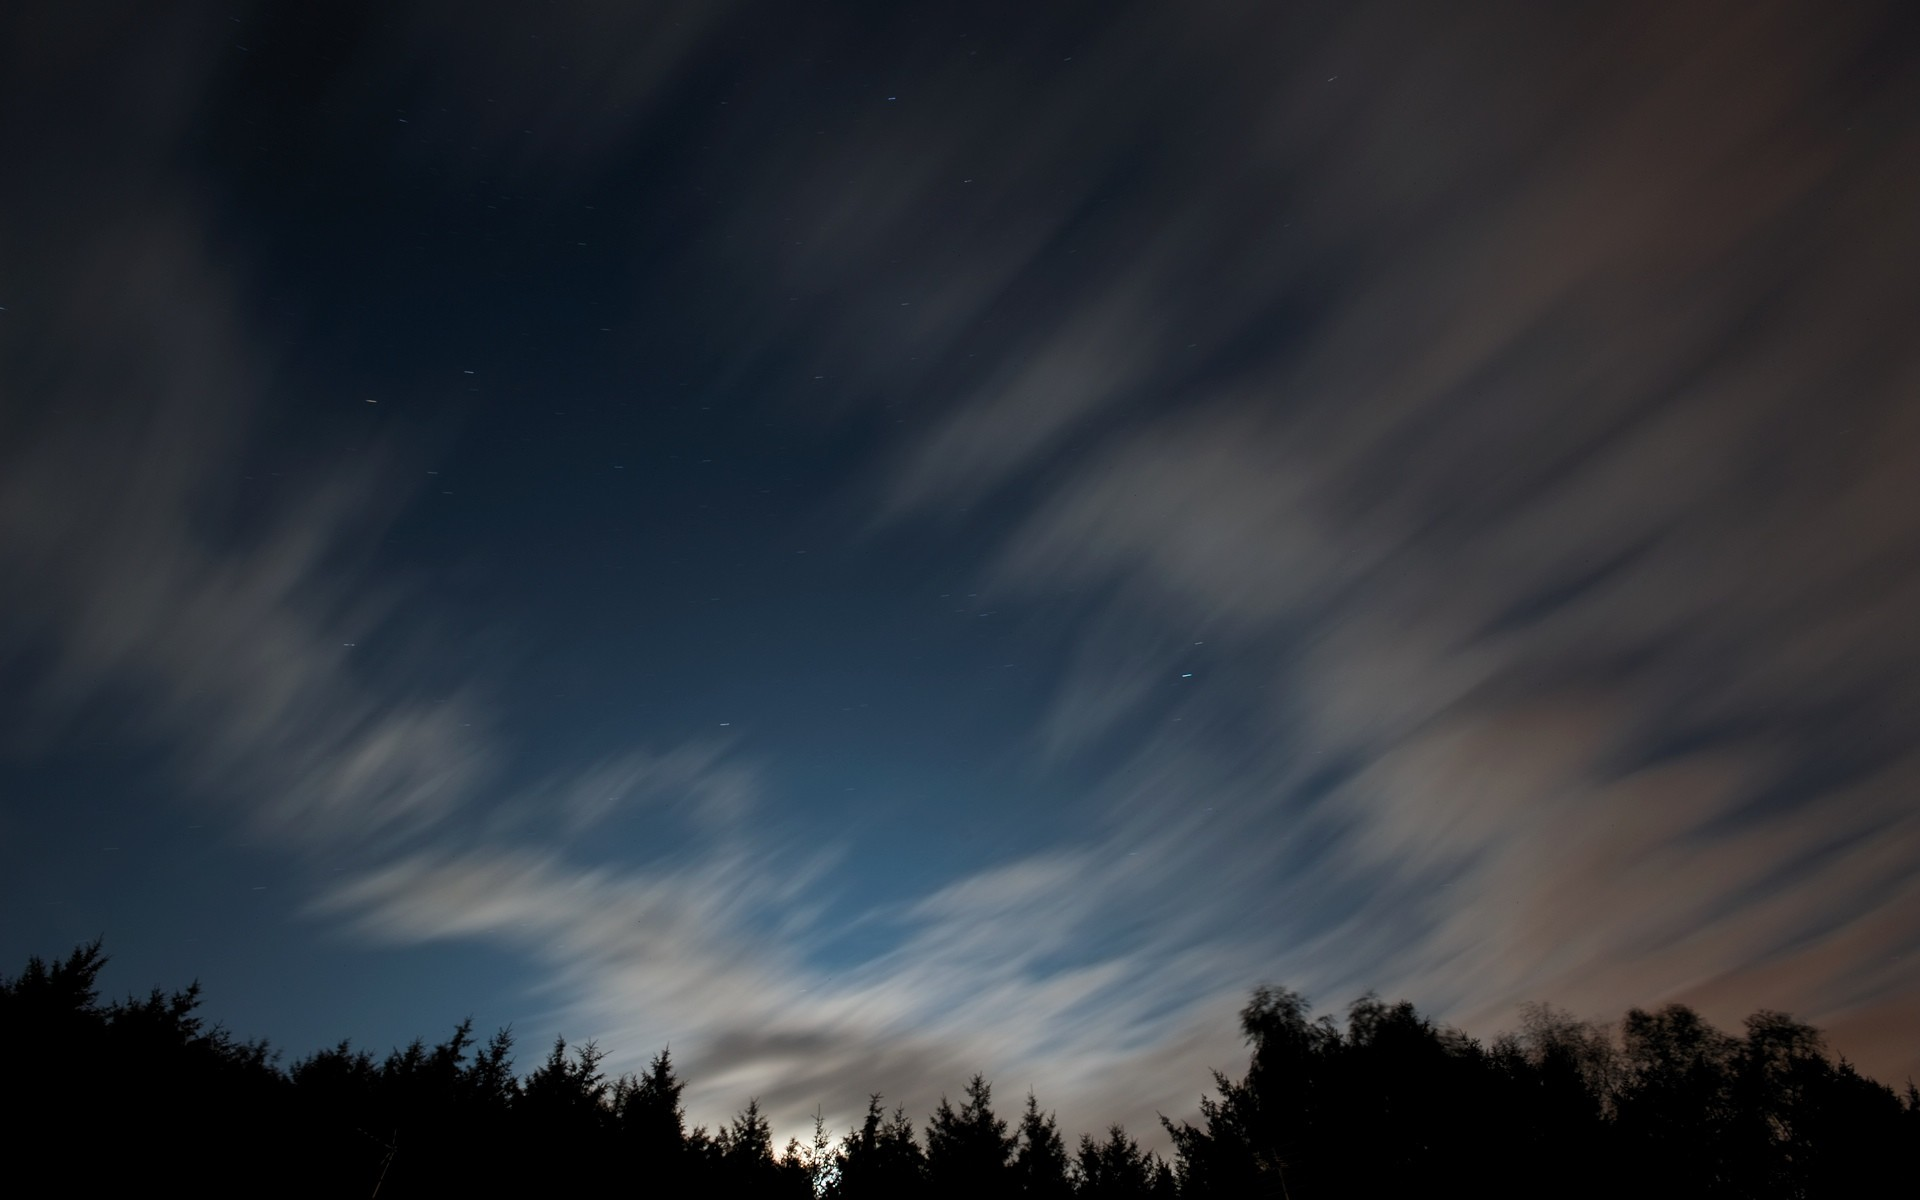 Night Sky Wallpapers Free with High Definition Wallpaper px  287.67 KB Nature Animated Pixel Stormy